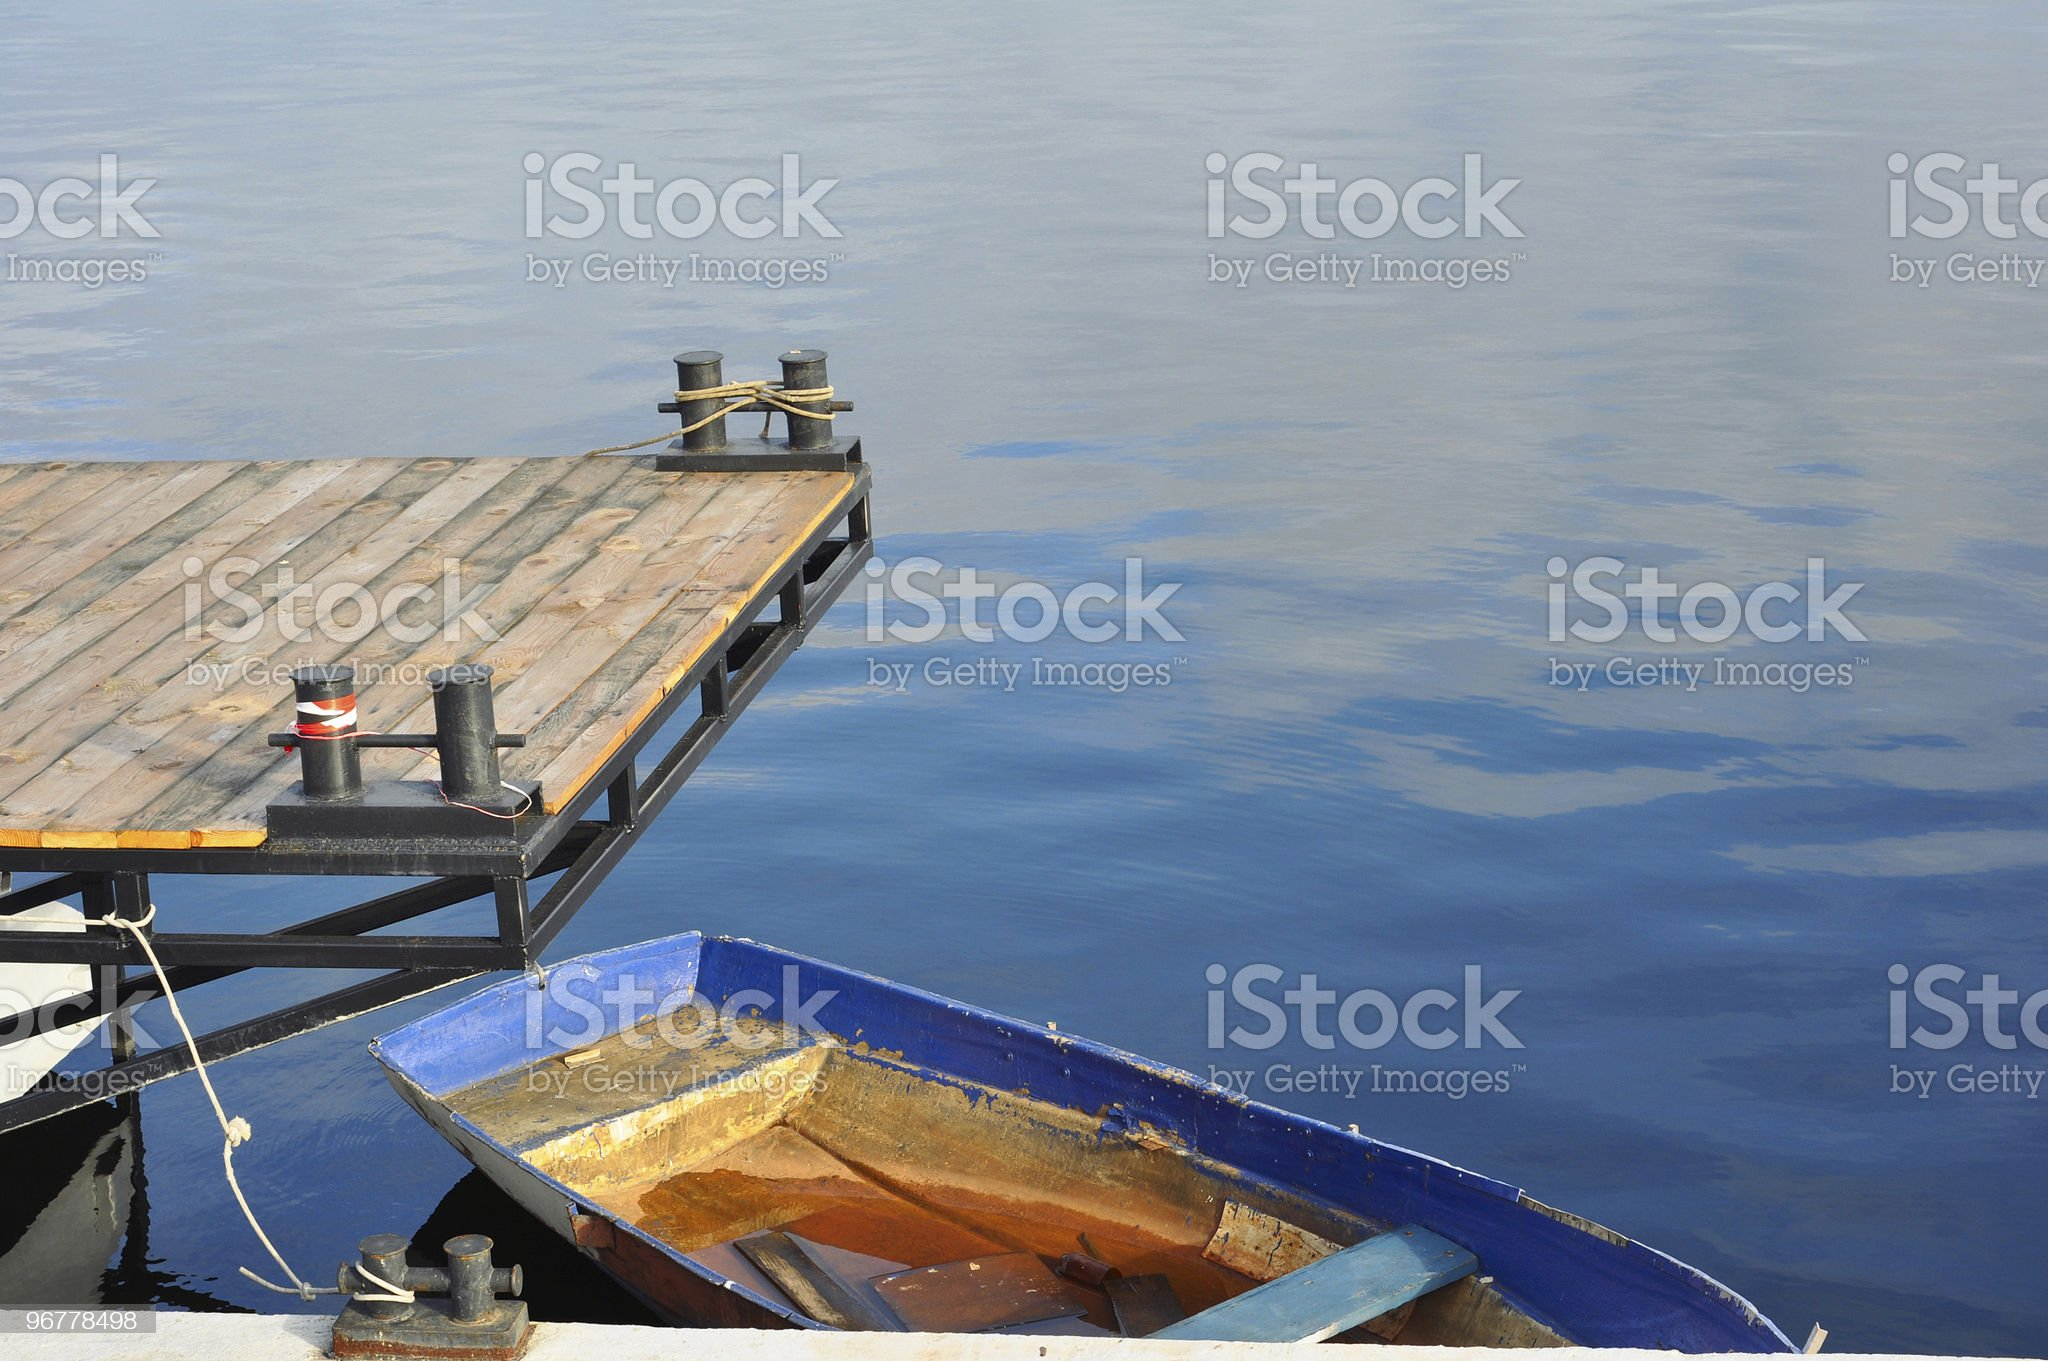 old rusty boat on the water royalty-free stock photo